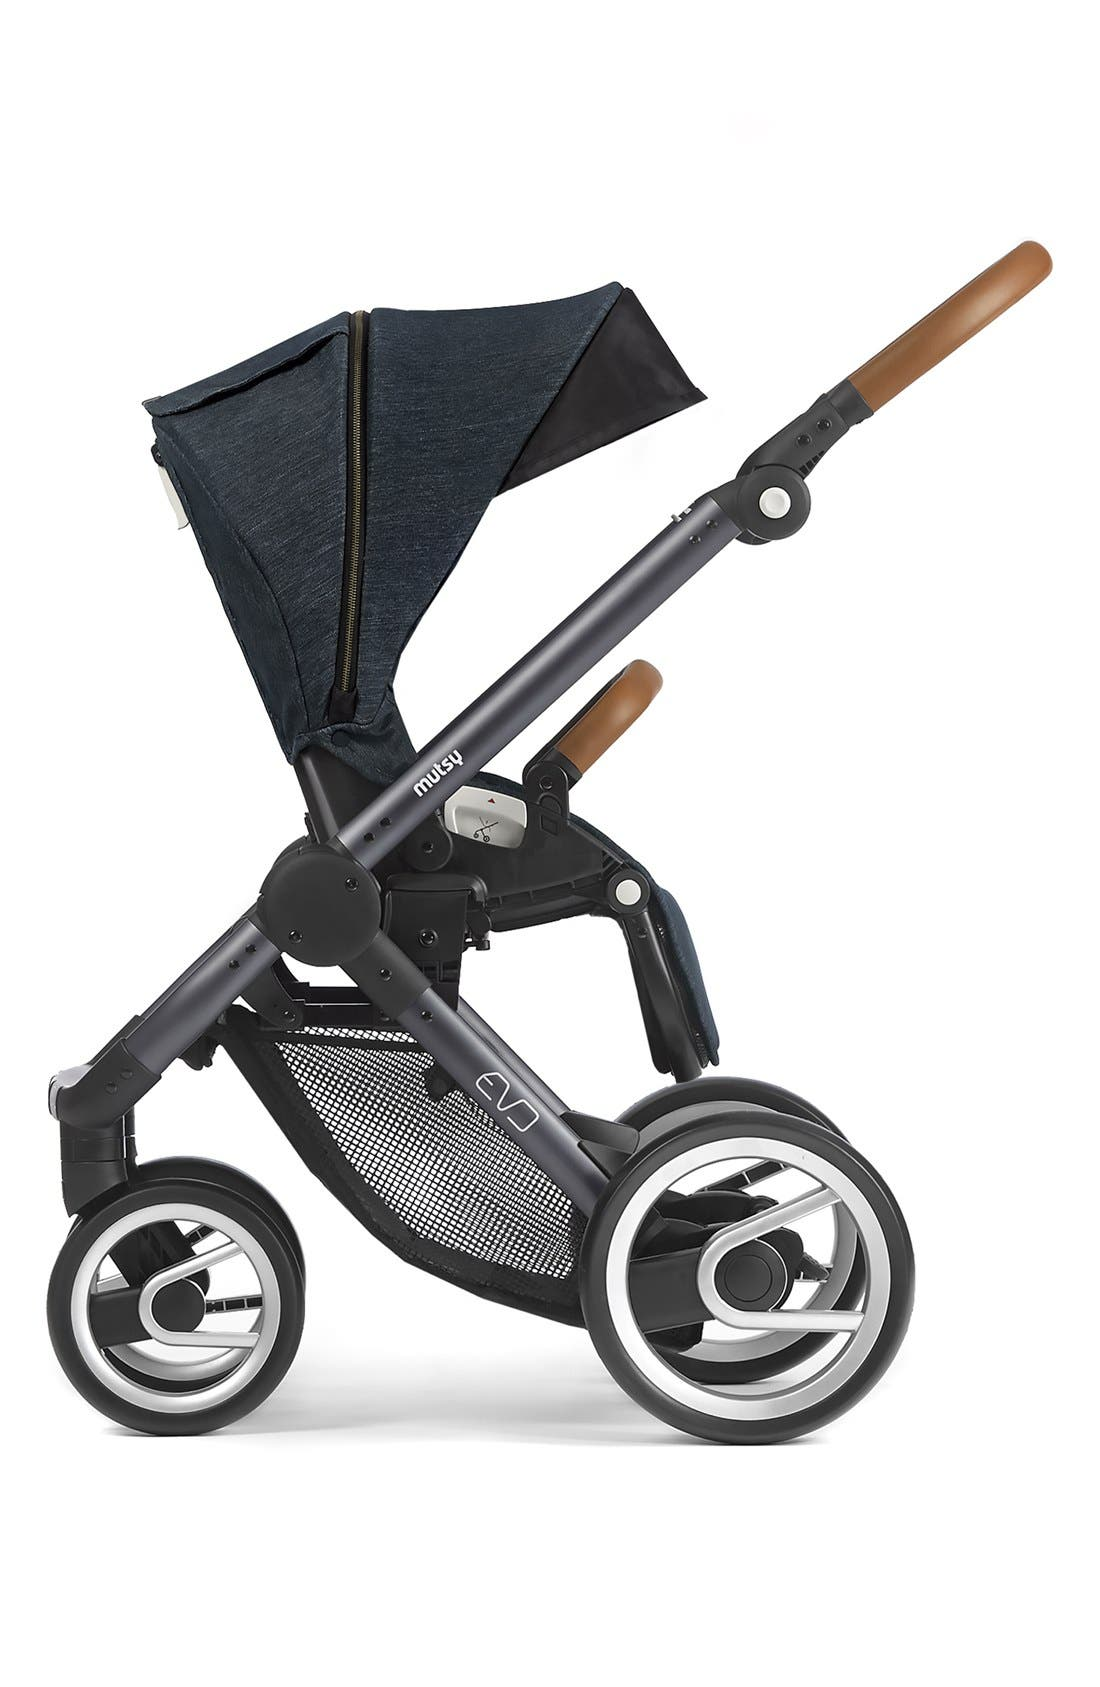 Evo - Farmer Earth Stroller,                             Alternate thumbnail 3, color,                             Brown/ Dark Grey